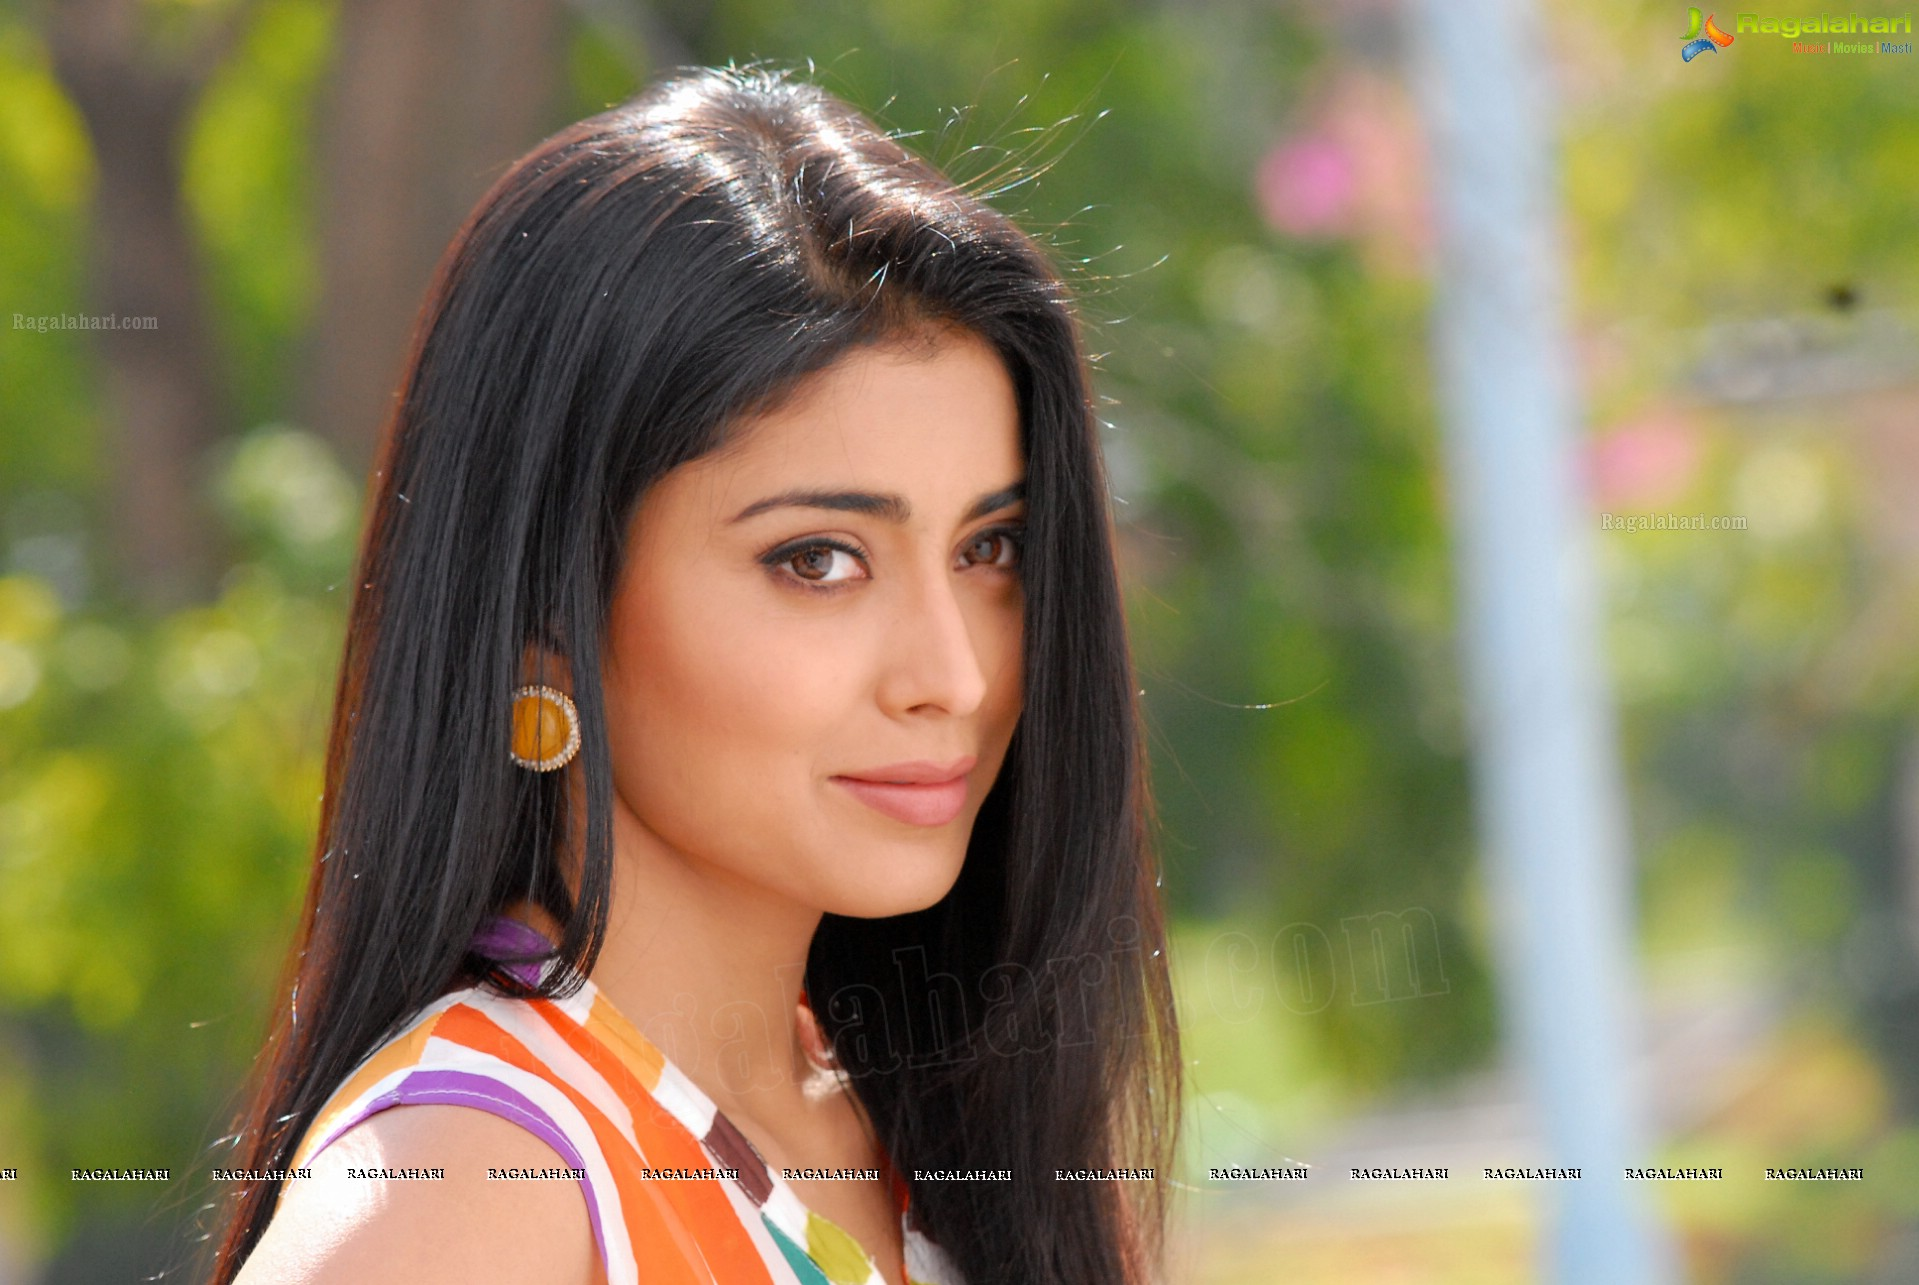 shriya saran (high definition) image 1 | latest bollywood actor